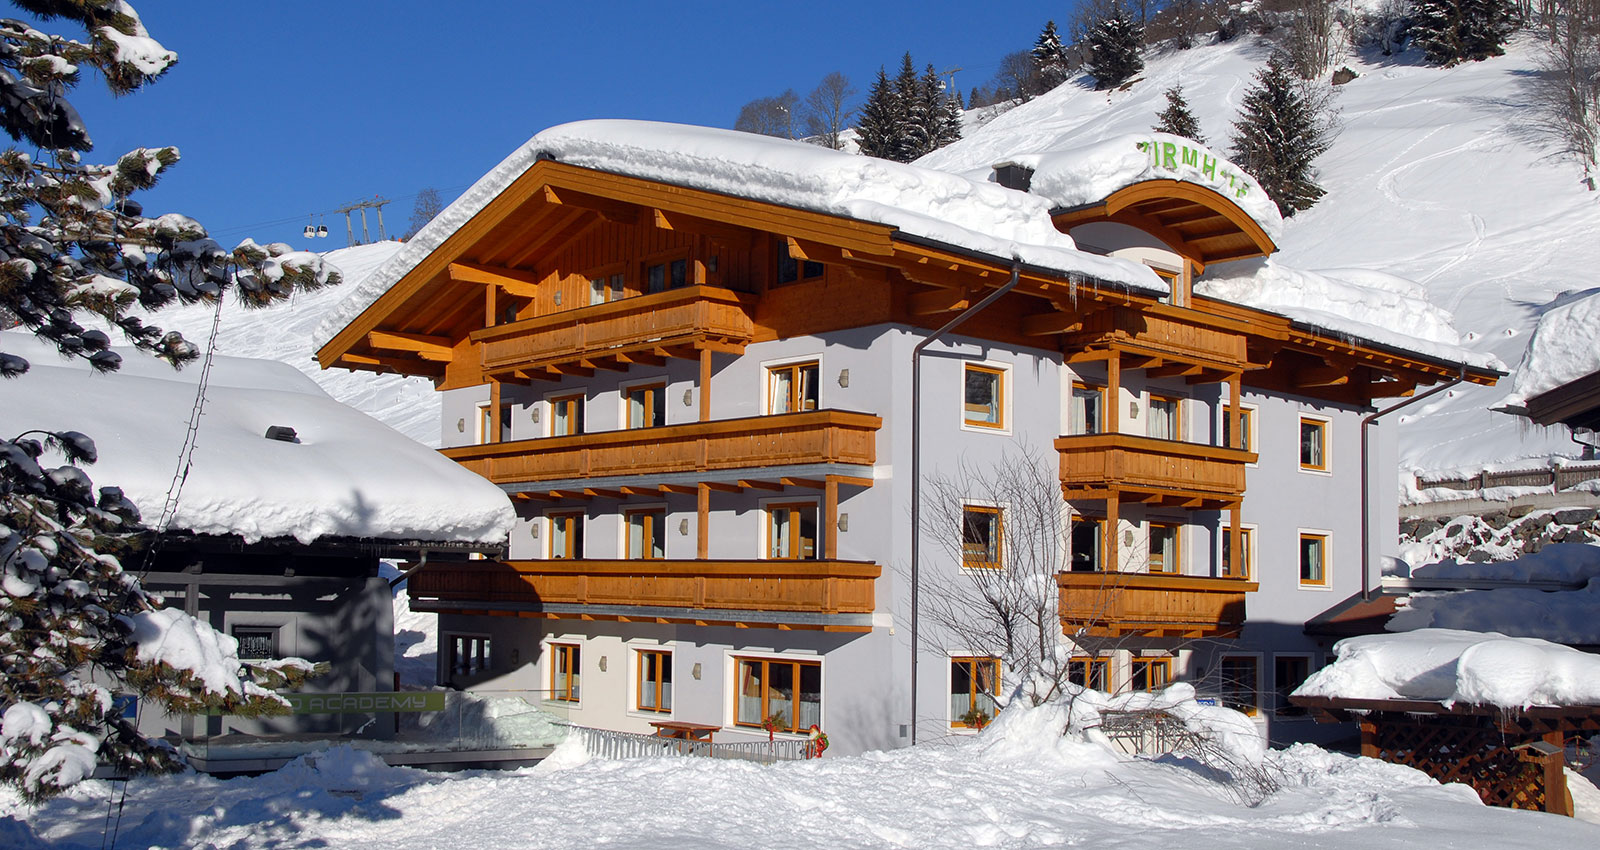 Jugendgästehaus Zirmhof  School Ski Trip Accommodation. Min. Suniya Hotel. Relax Torreruja Thalasso & Spa Hotel. Chamberlin Court Hotel. Pension Casa Di David. Akamas Health Farm And Spa Hotel. Hotel Tyrol. Hotel Airone. Best Western Airport Motel & Convention Centre